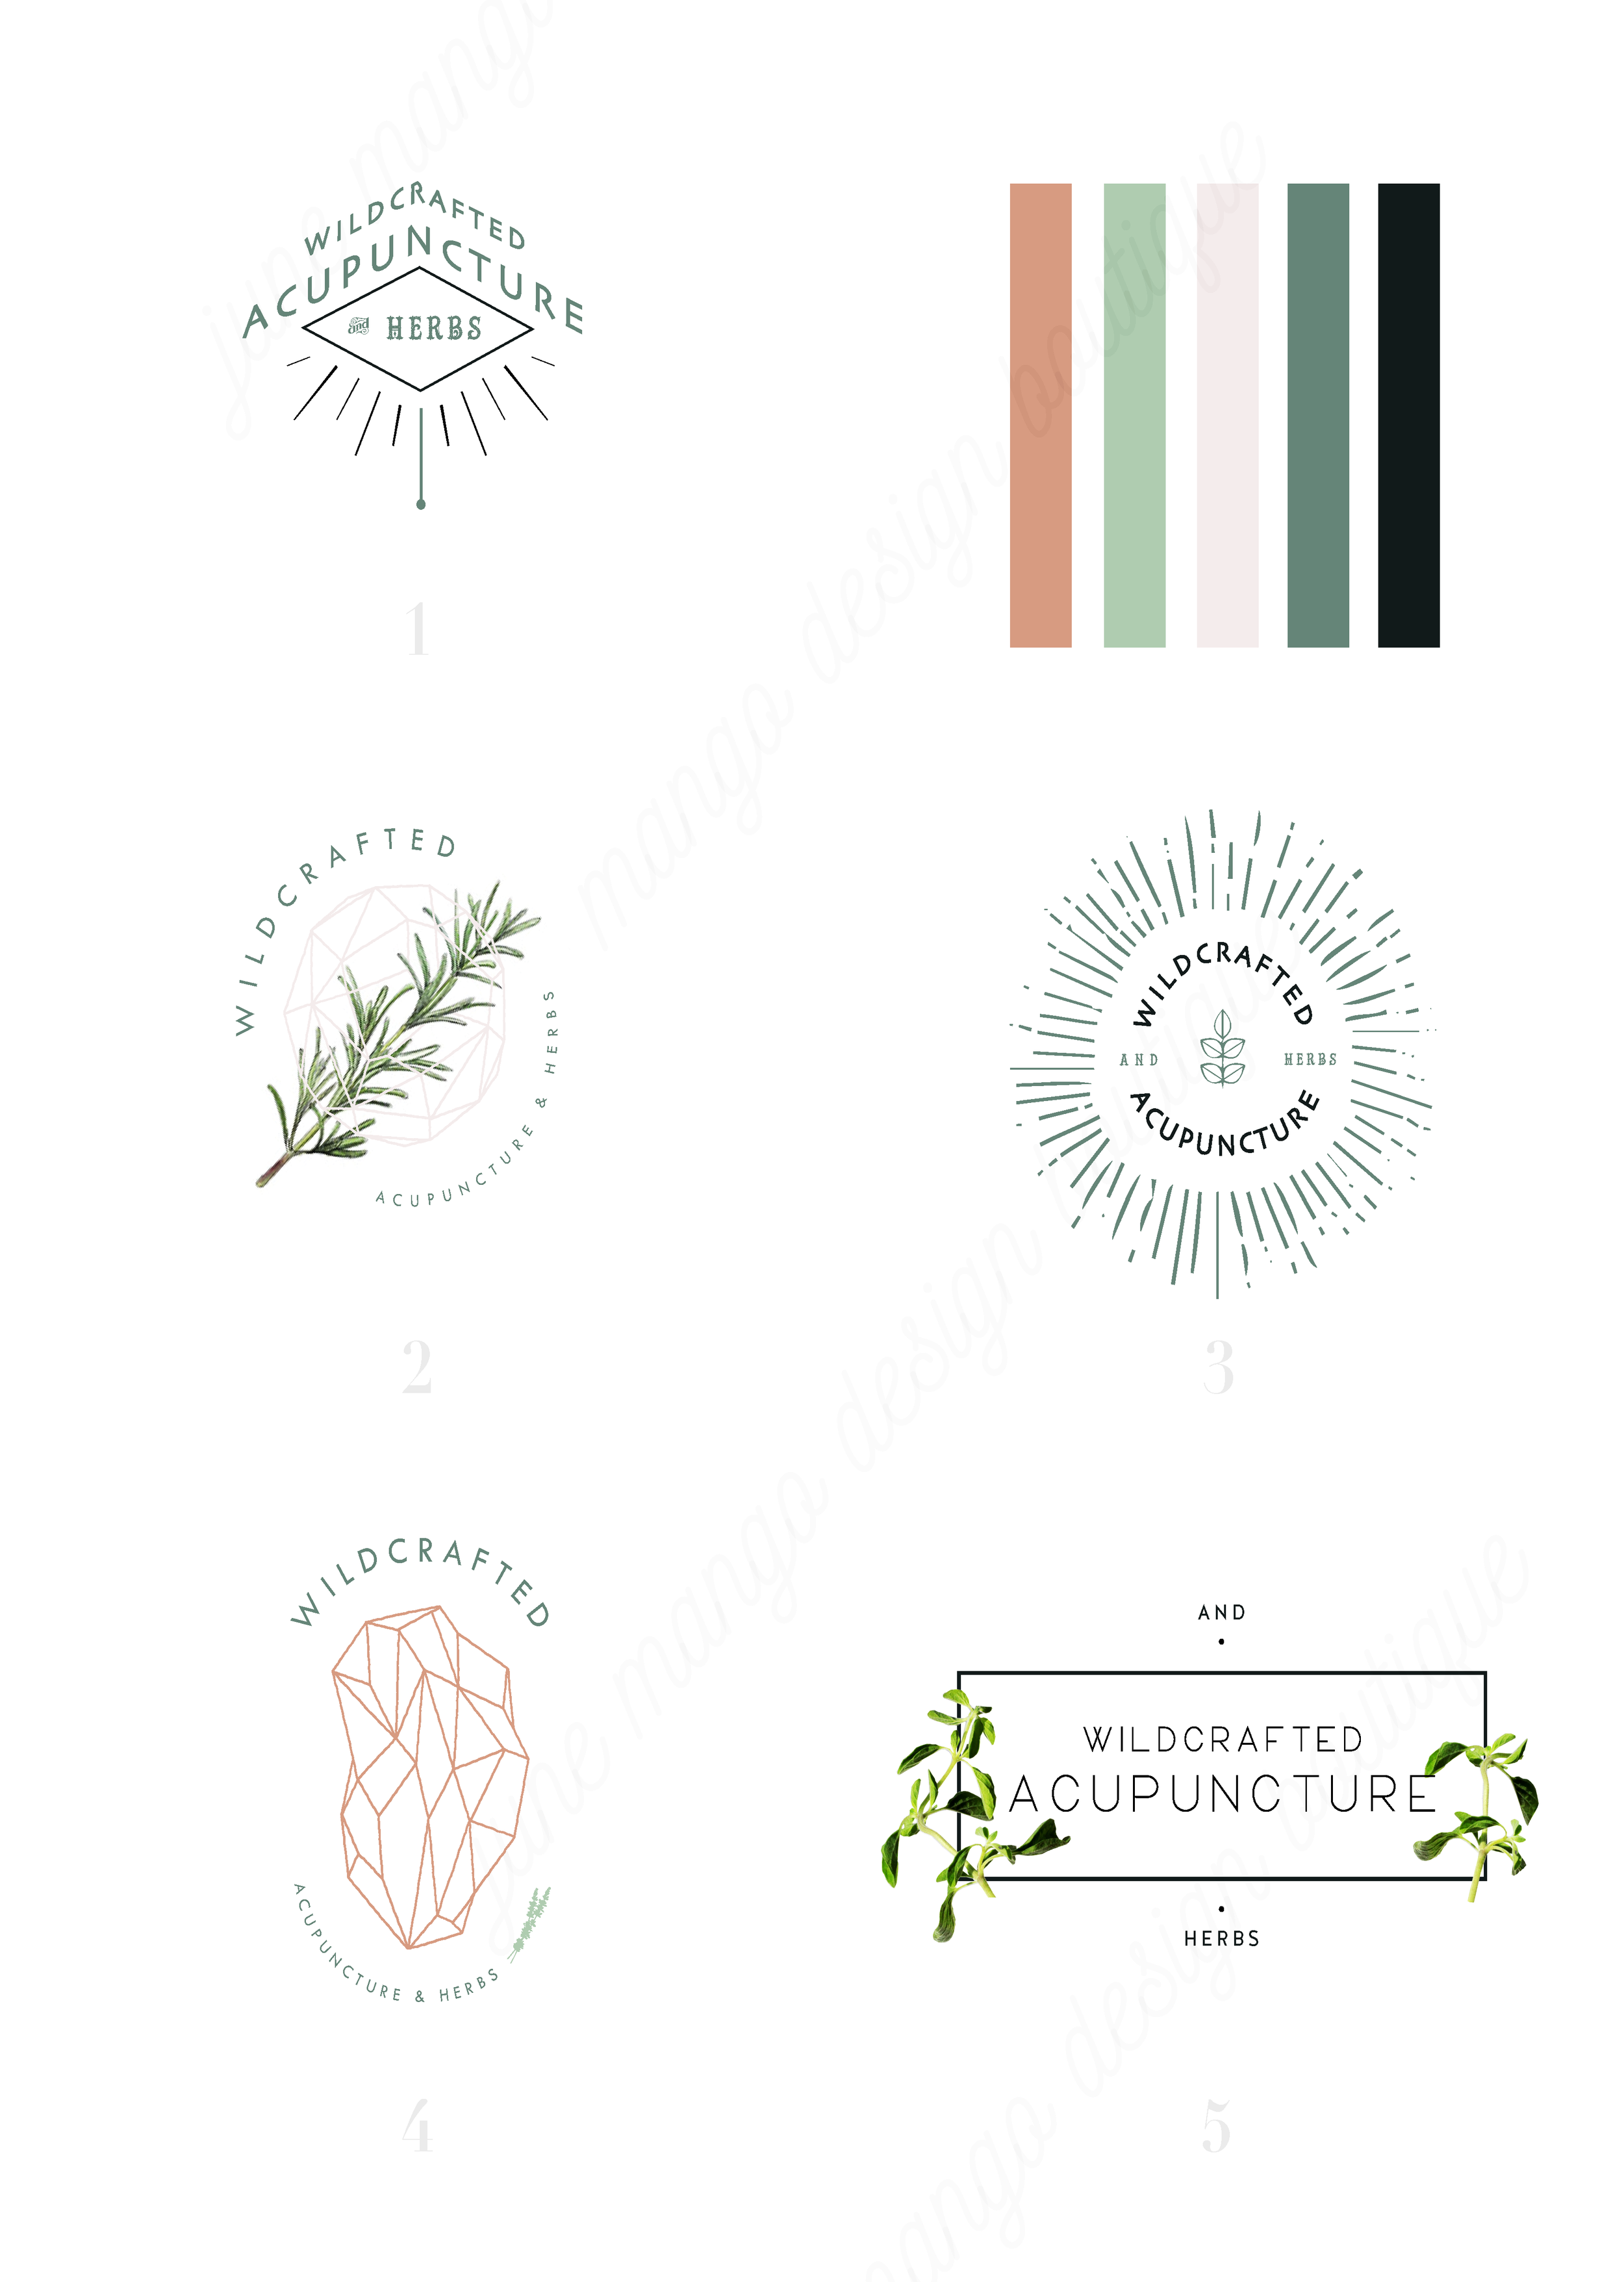 Wildcrafted-Acupuncture-Logo-Process-Branding-june-mango-design.png